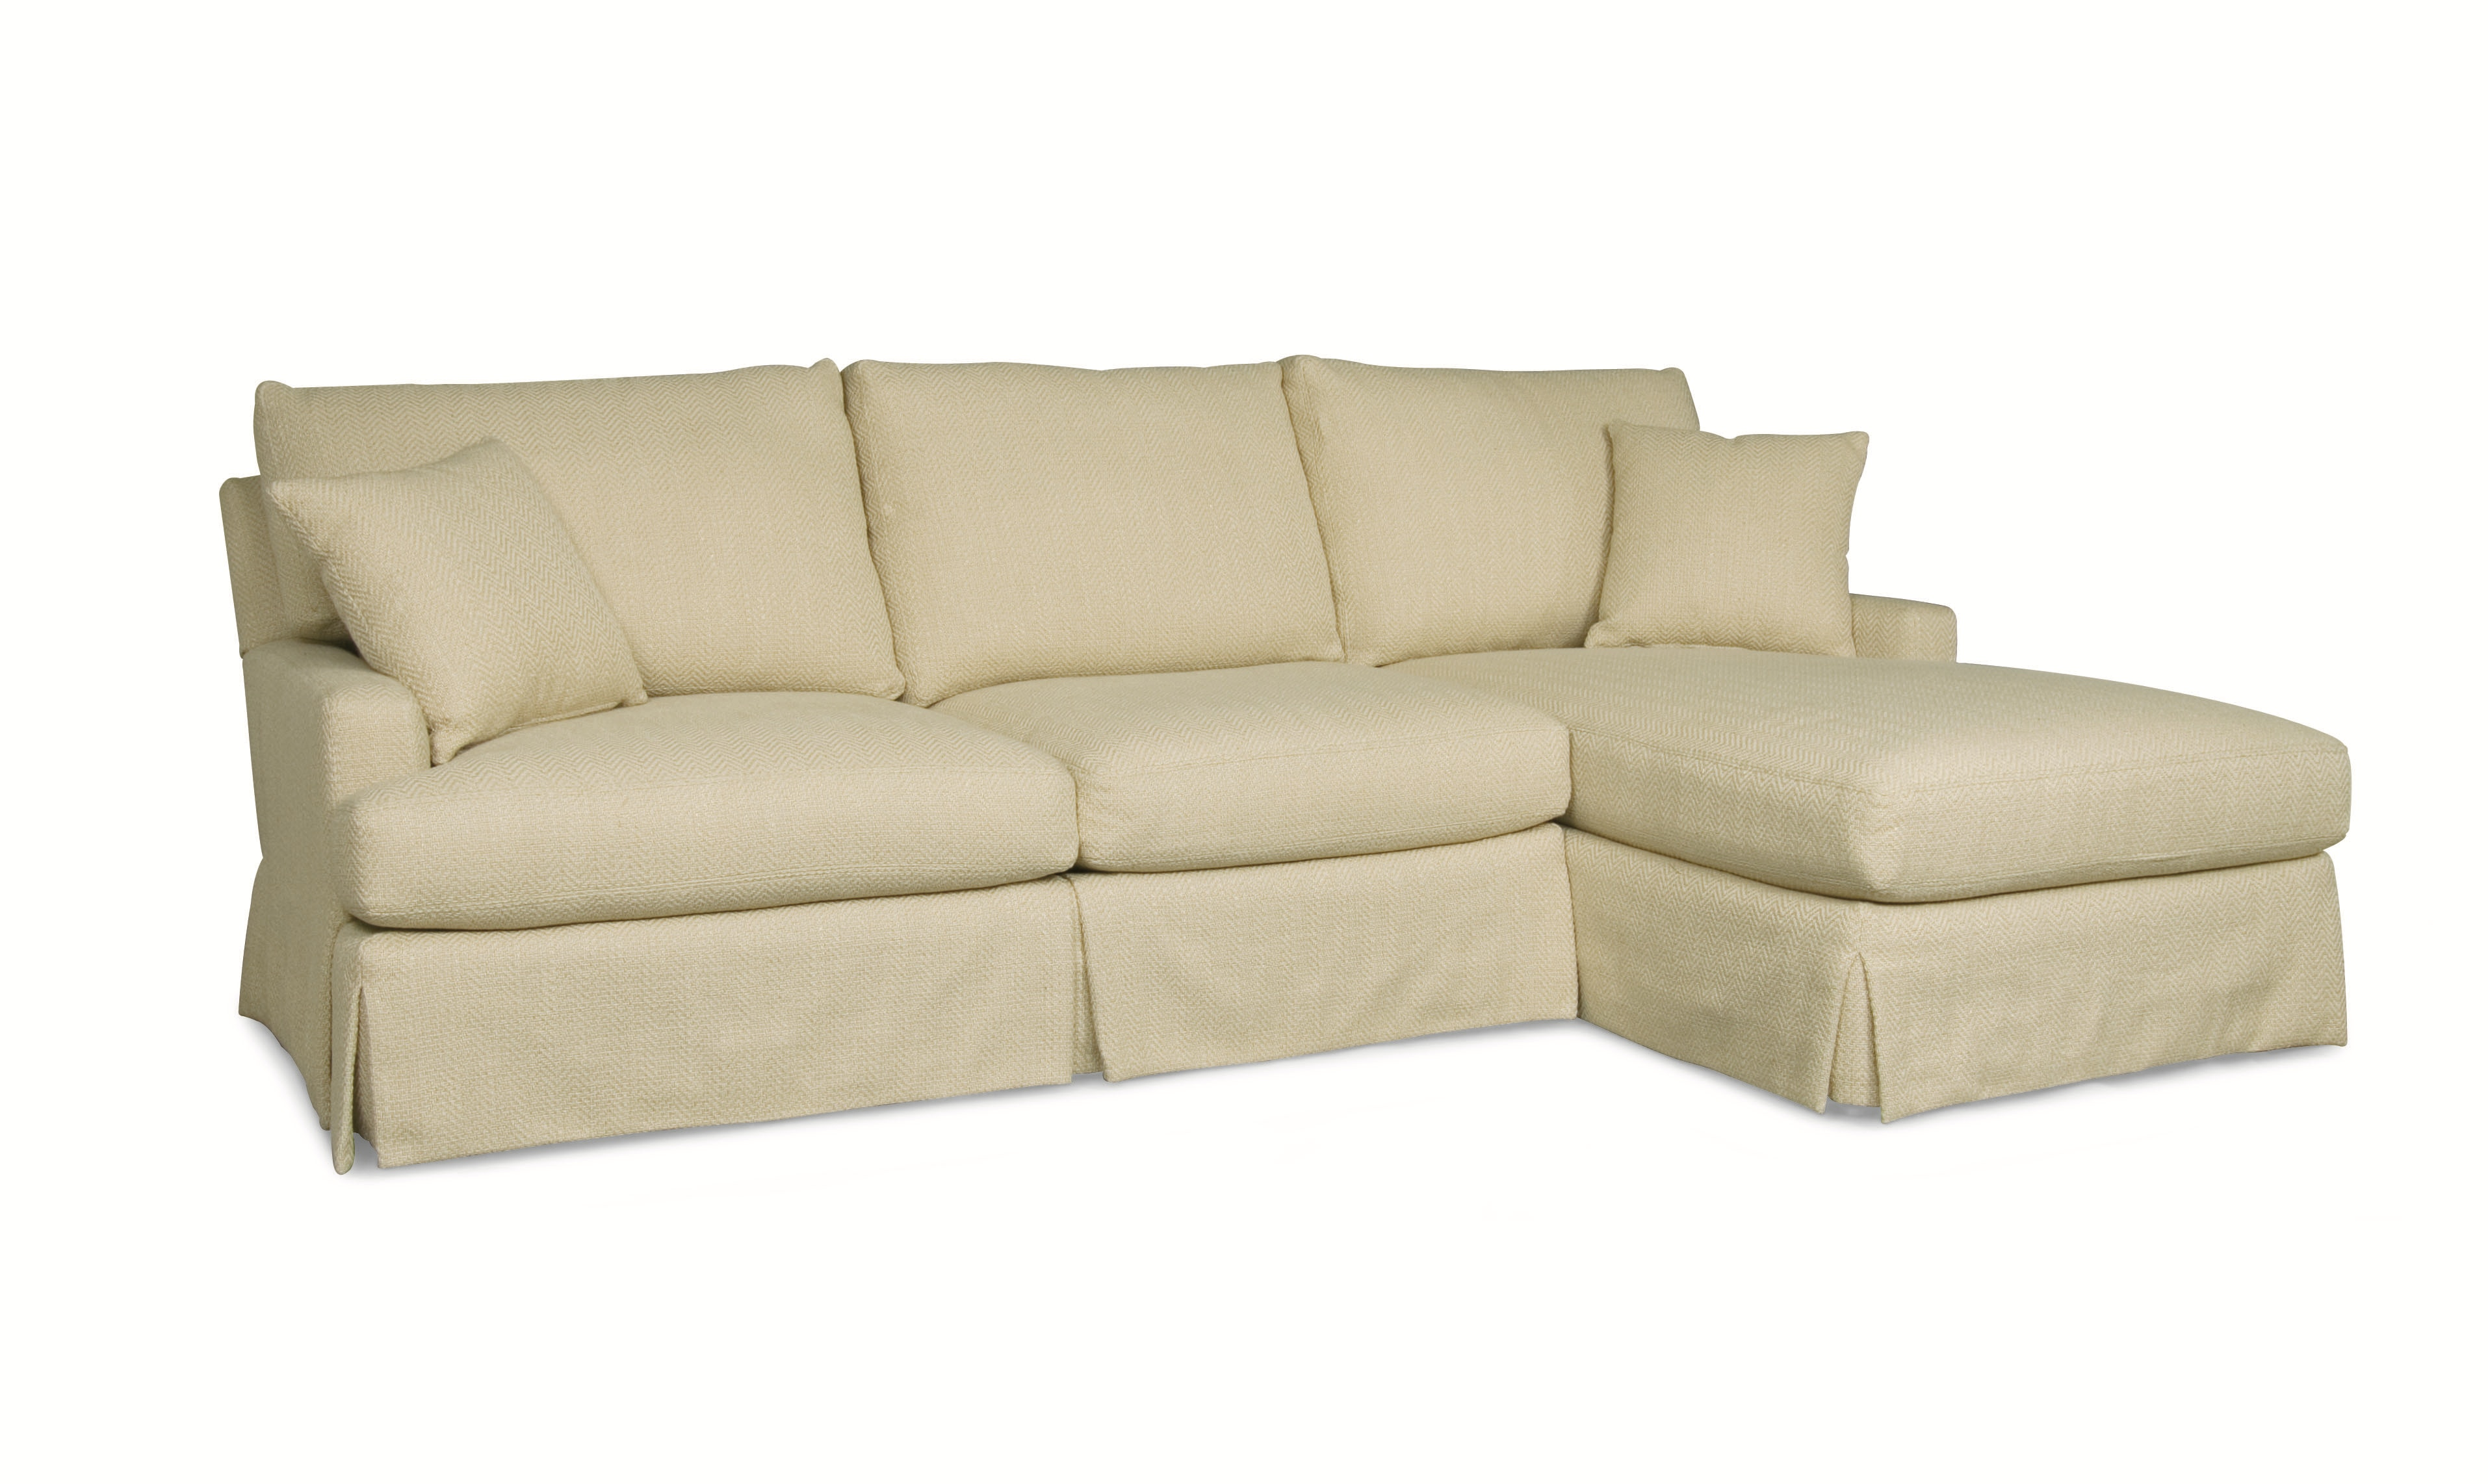 Lee Industries Sectional Series 3972-Series  sc 1 st  Shoferu0027s Furniture : lee sectional - Sectionals, Sofas & Couches